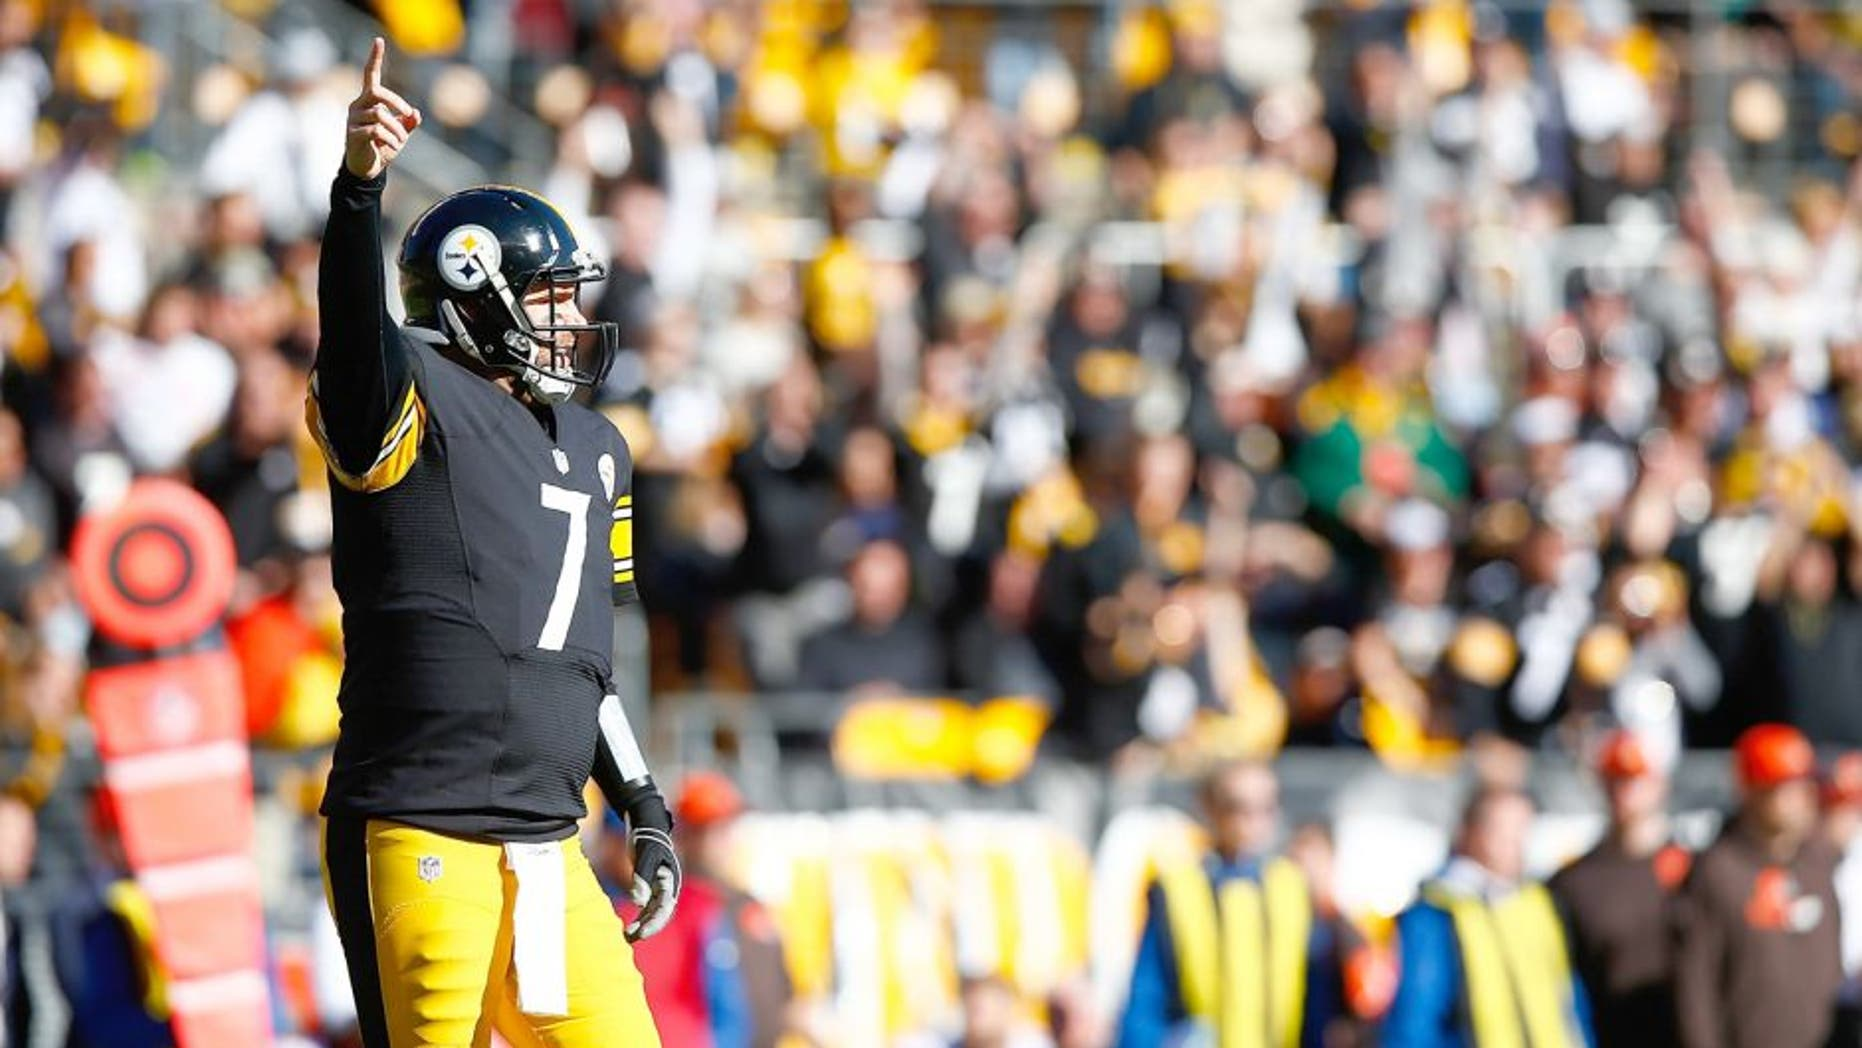 PITTSBURGH, PA - NOVEMBER 15: Ben Roethlisberger #7 of the Pittsburgh Steelers reacts to a pass completion to Martavis Bryant# 10 during the 1st quarter of the game against the Cleveland Browns at Heinz Field on November 15, 2015 in Pittsburgh, Pennsylvania. (Photo by Jared Wickerham/Getty Images)